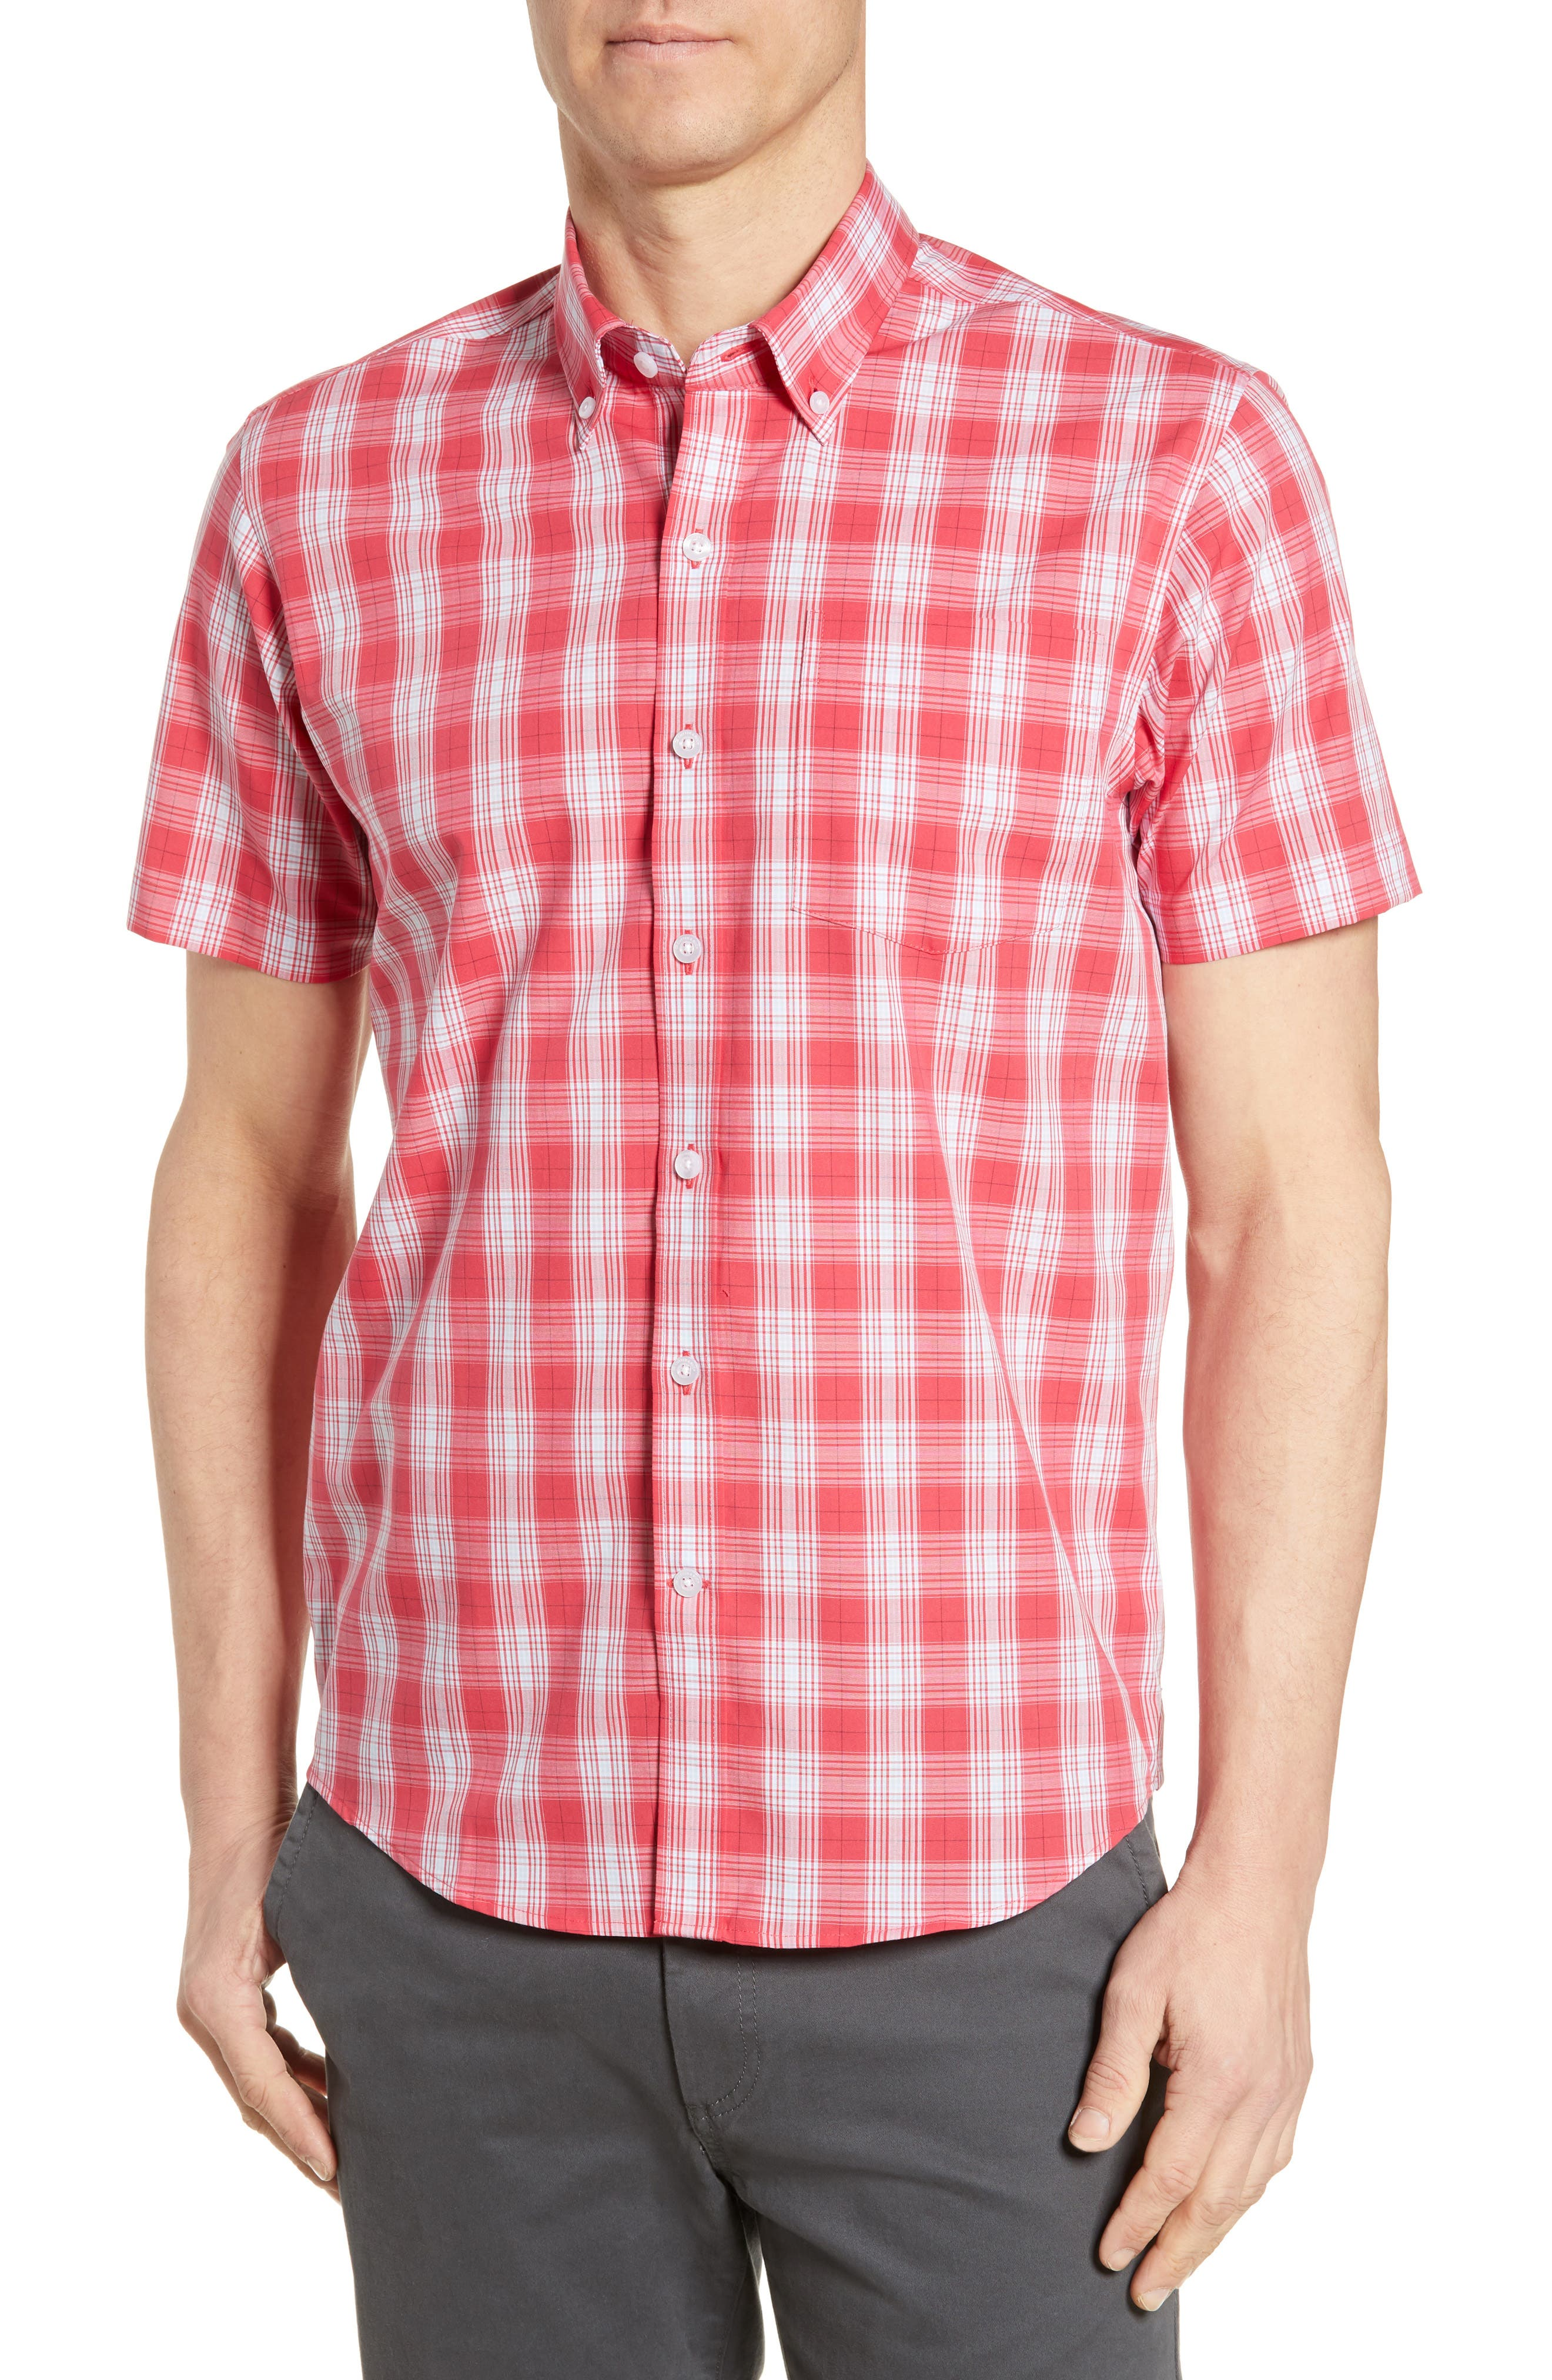 Cutter & Buck Strive Classic Fit Shadow Plaid Sport Shirt,  Red